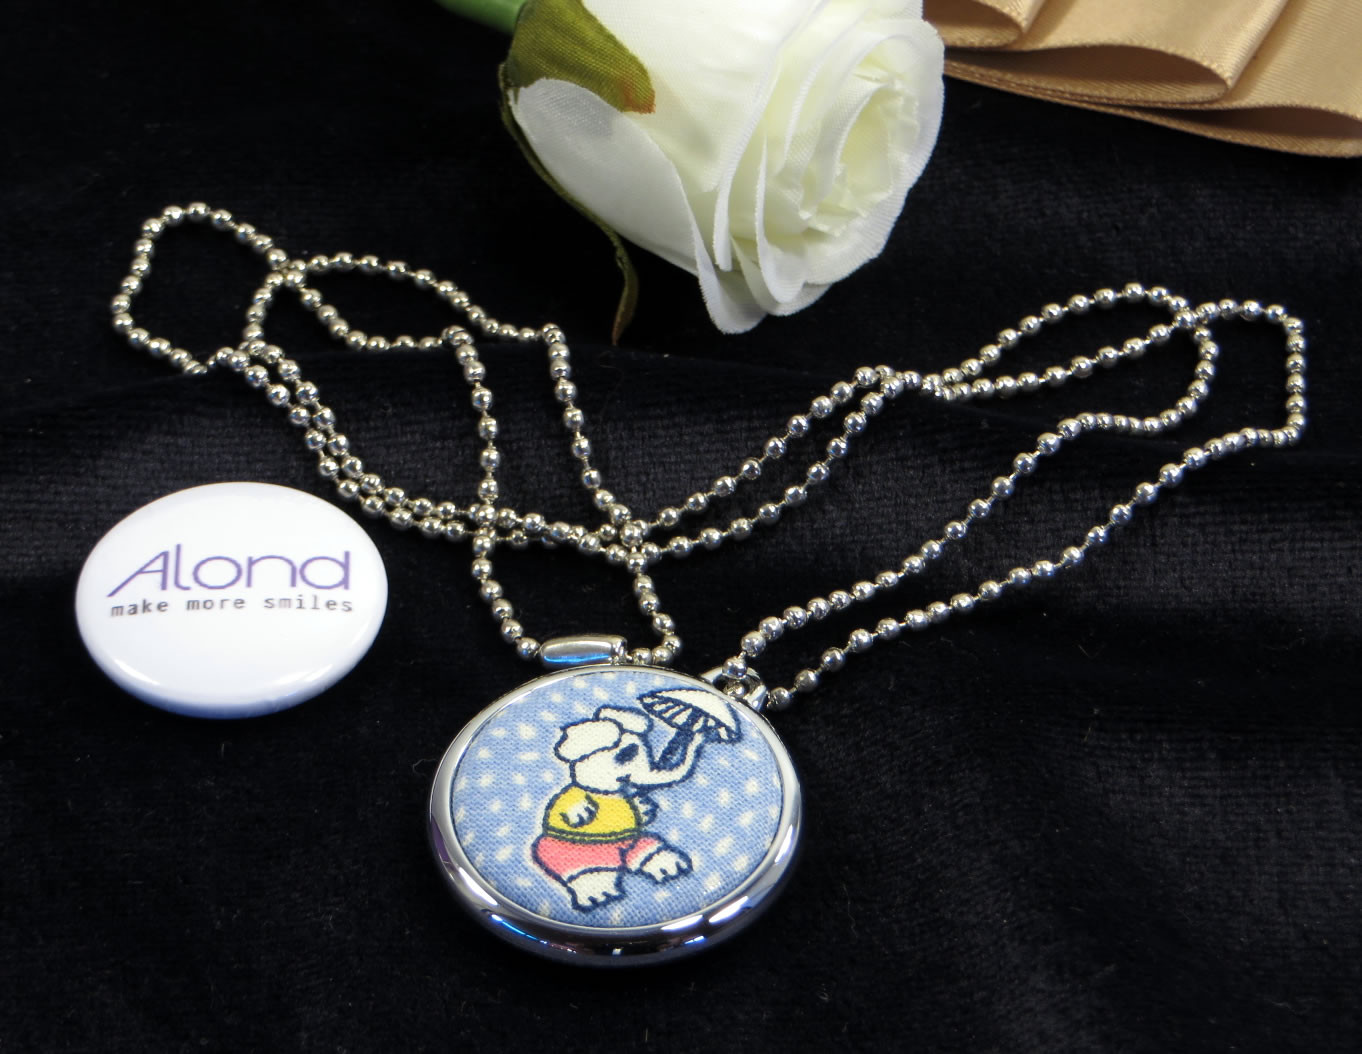 Chrome badge necklace pendant for your 25mm alond machine